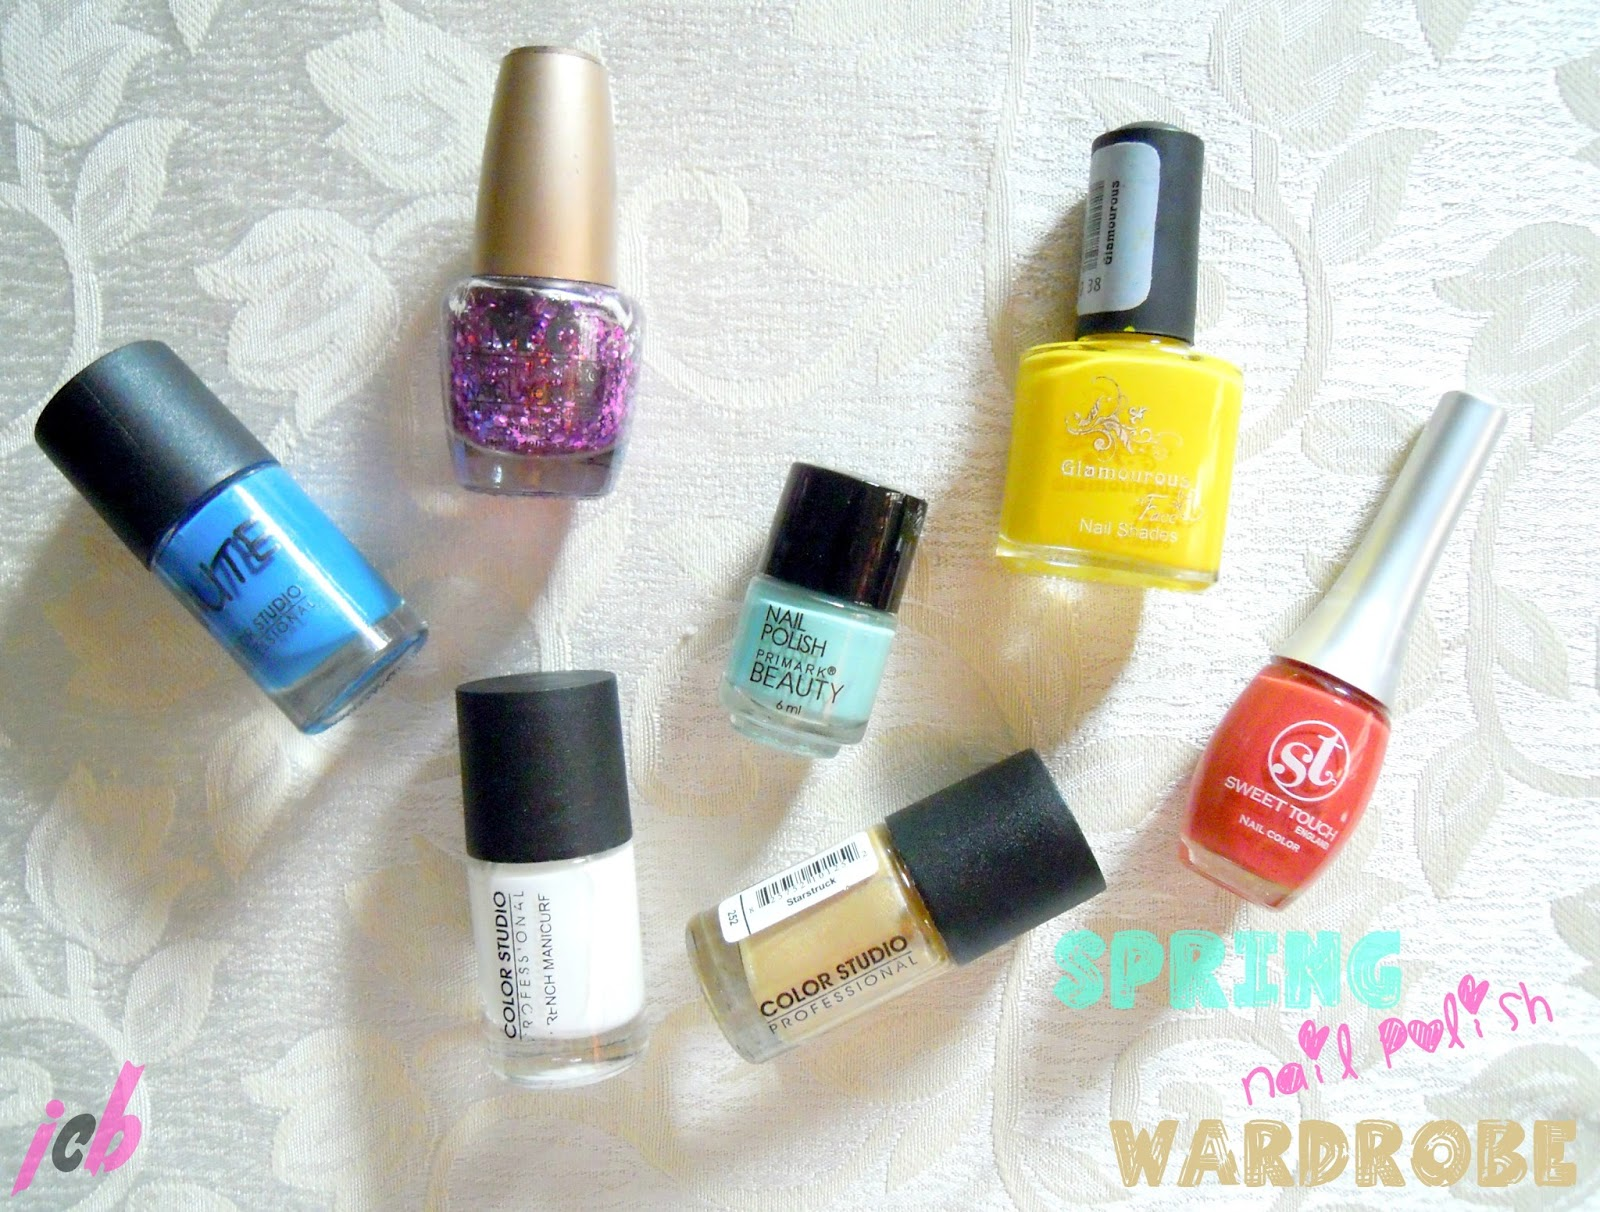 My Spring Nail Polish Wardrobe